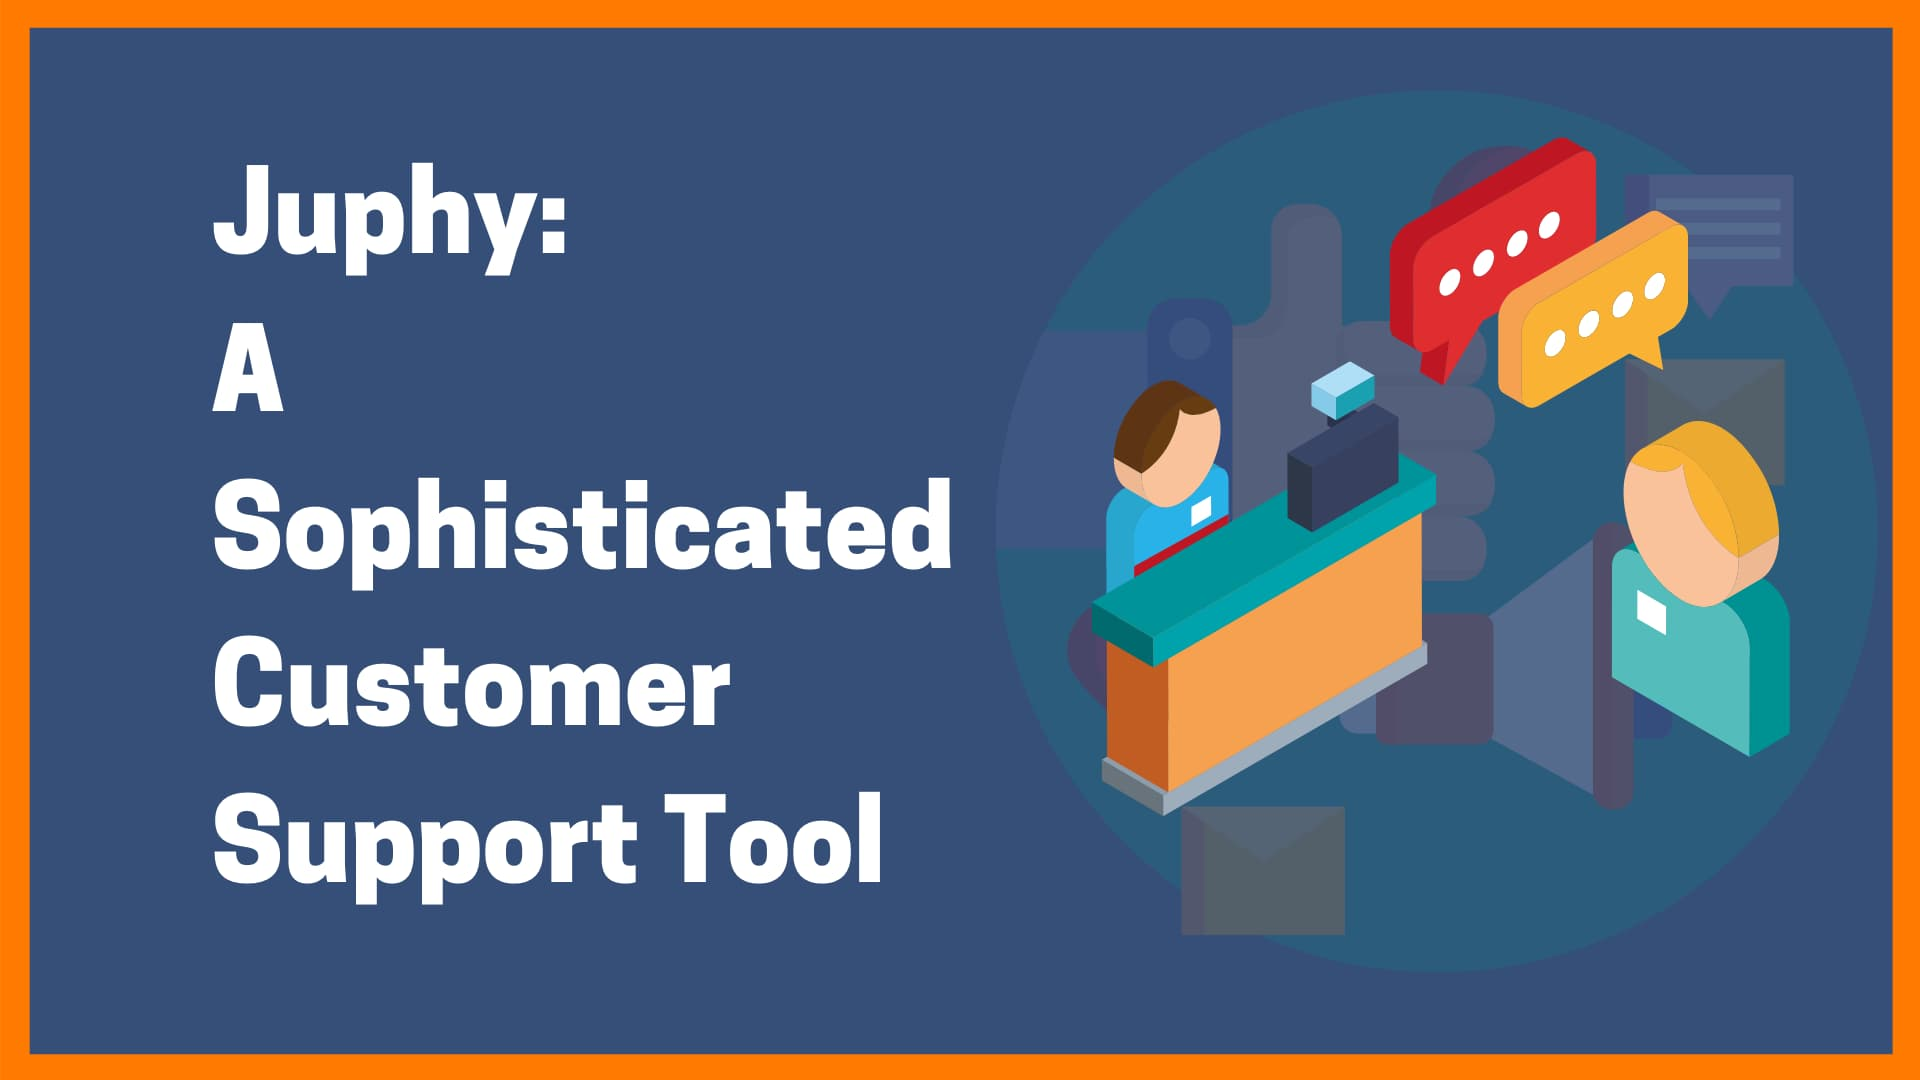 Juphy: A Sophisticated Customer Support Tool For Your Business